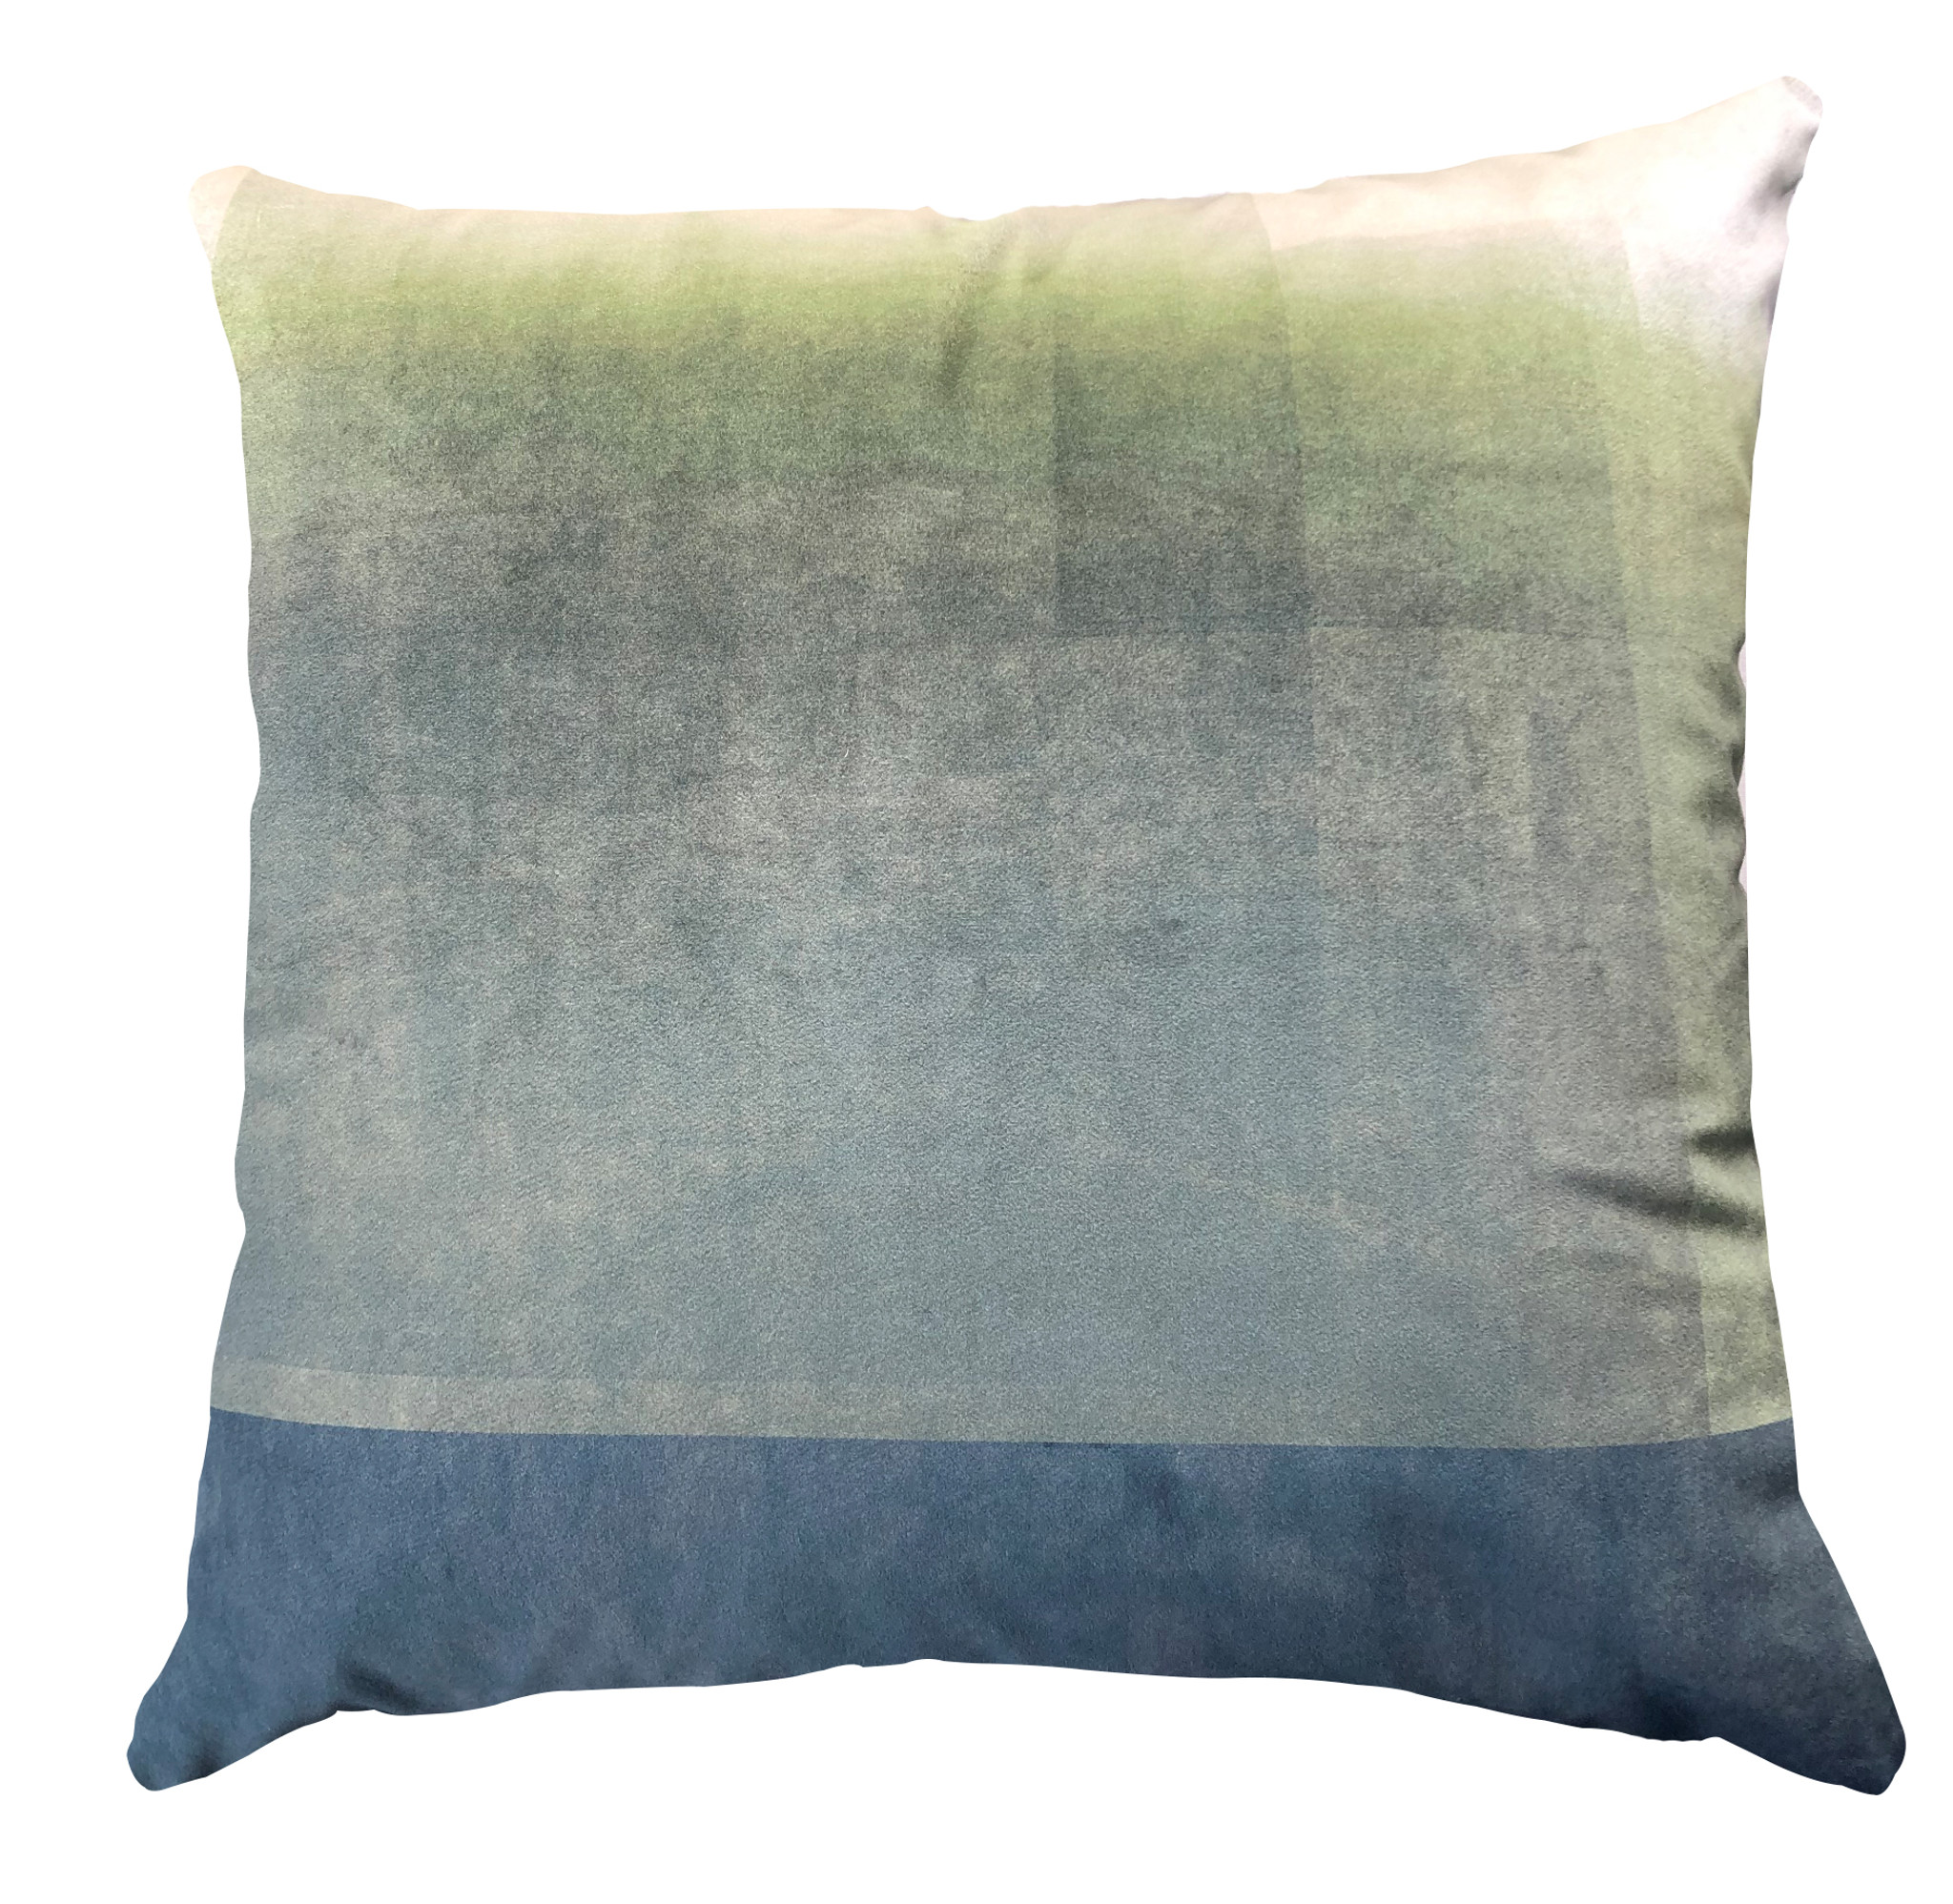 Cushion Cover - Ryokan Dreaming - Destination Antique Olive